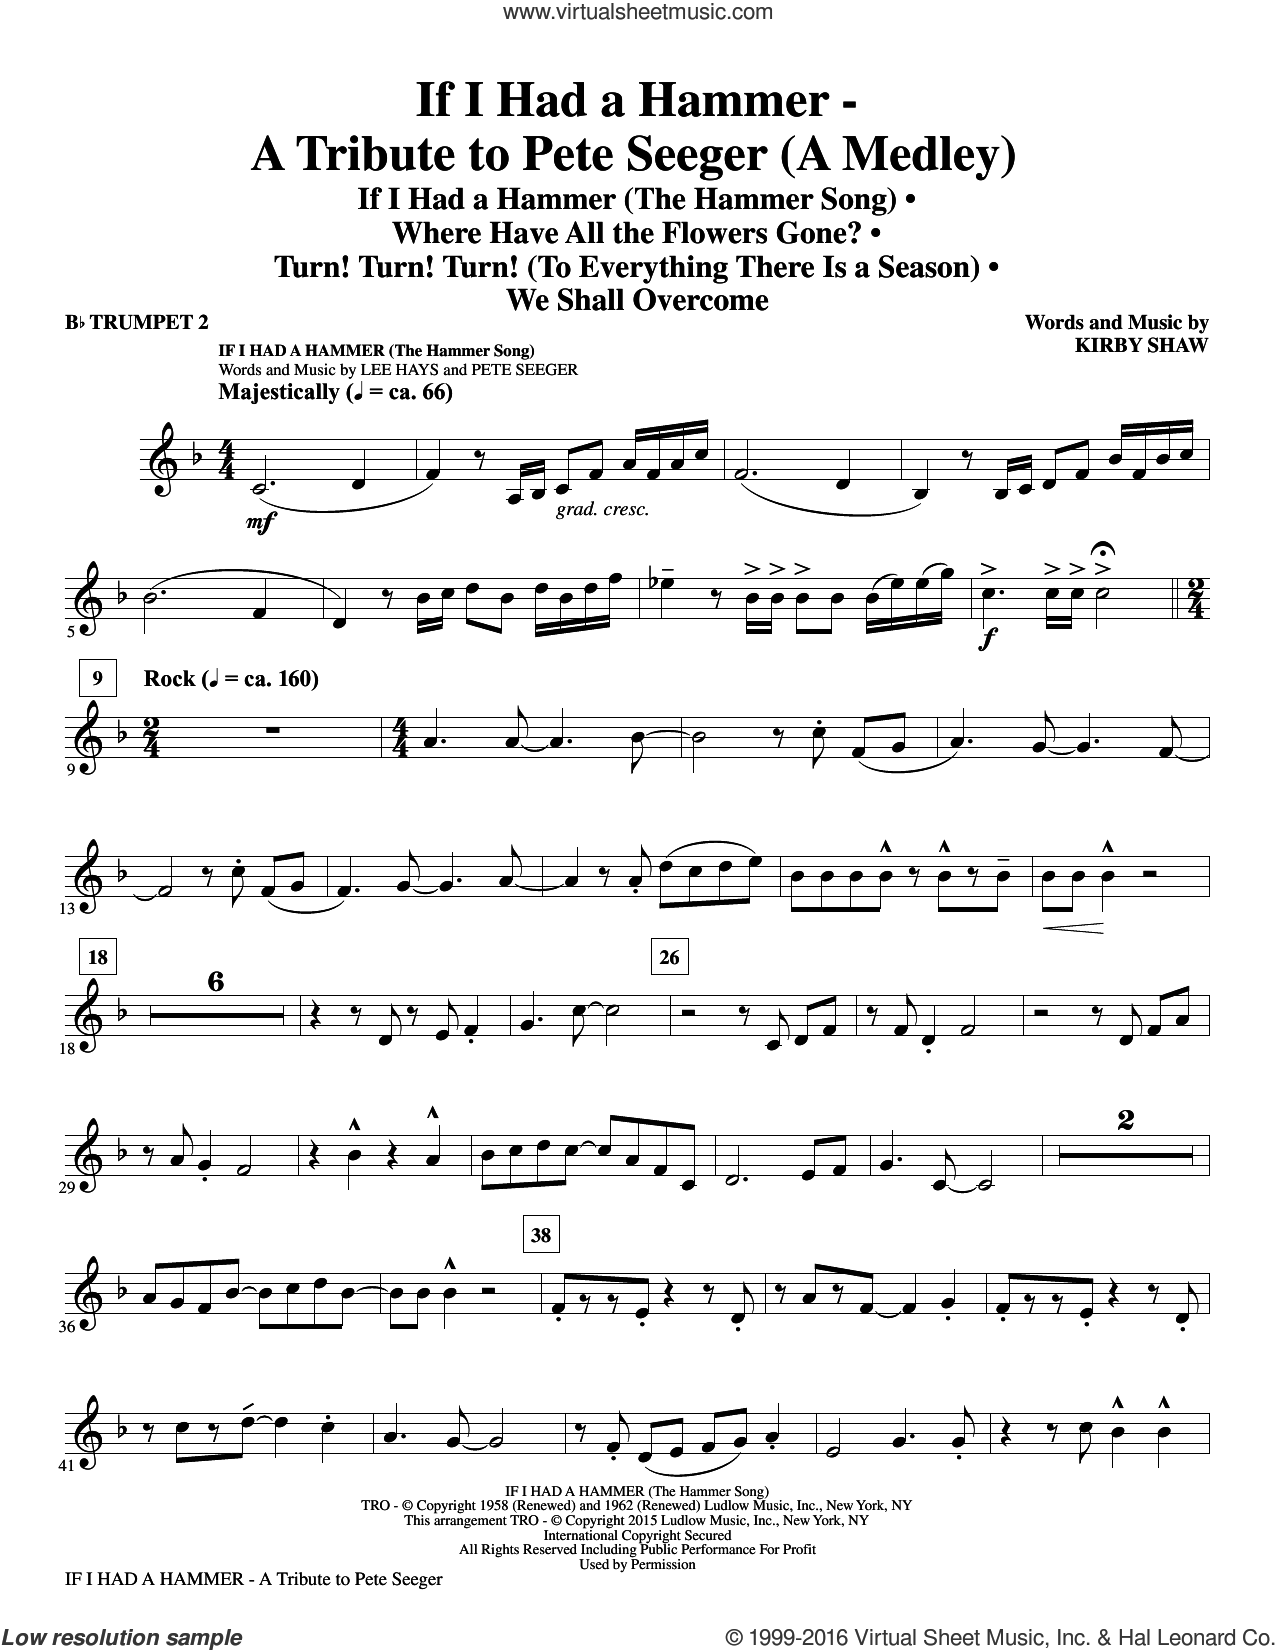 If I Had A Hammer, a tribute to pete seeger sheet music for orchestra/band (Bb trumpet 2) by Kirby Shaw, Peter, Paul & Mary and Pete Seeger. Score Image Preview.